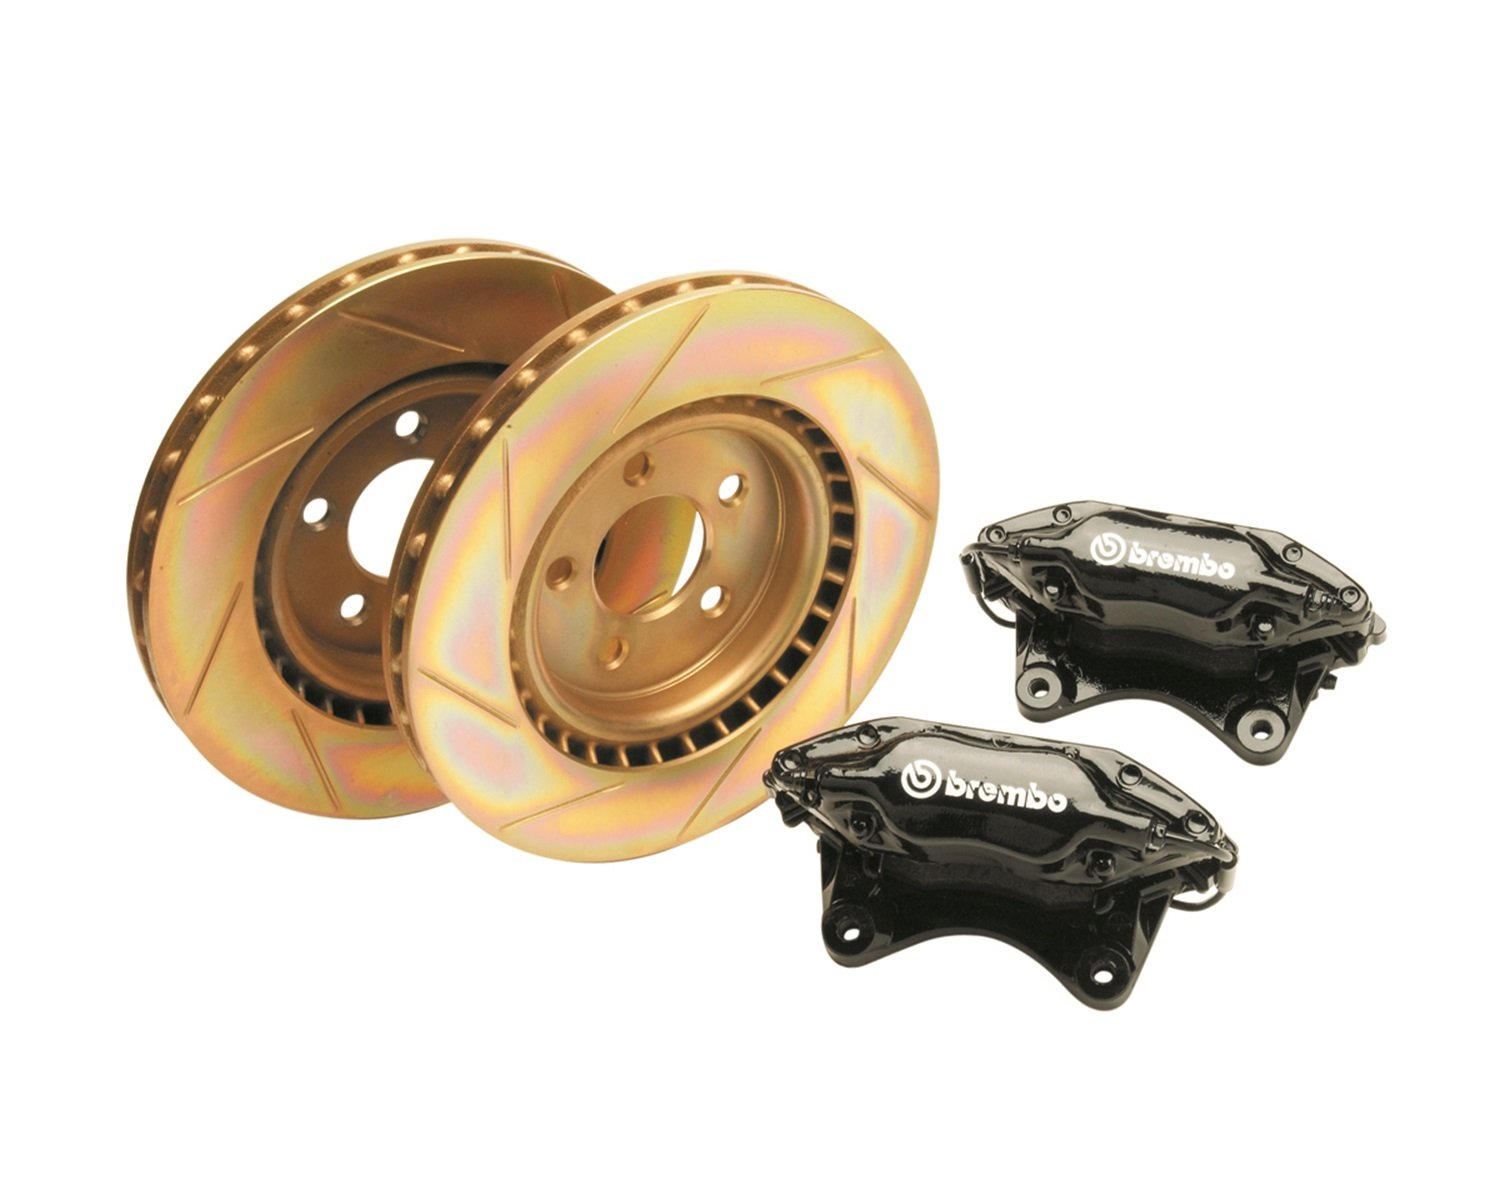 Ford Racing M 2300 X Disc Brake Kit Front Automotive Wilwood Kitfront Stock Replacementhonda262mm Rotors